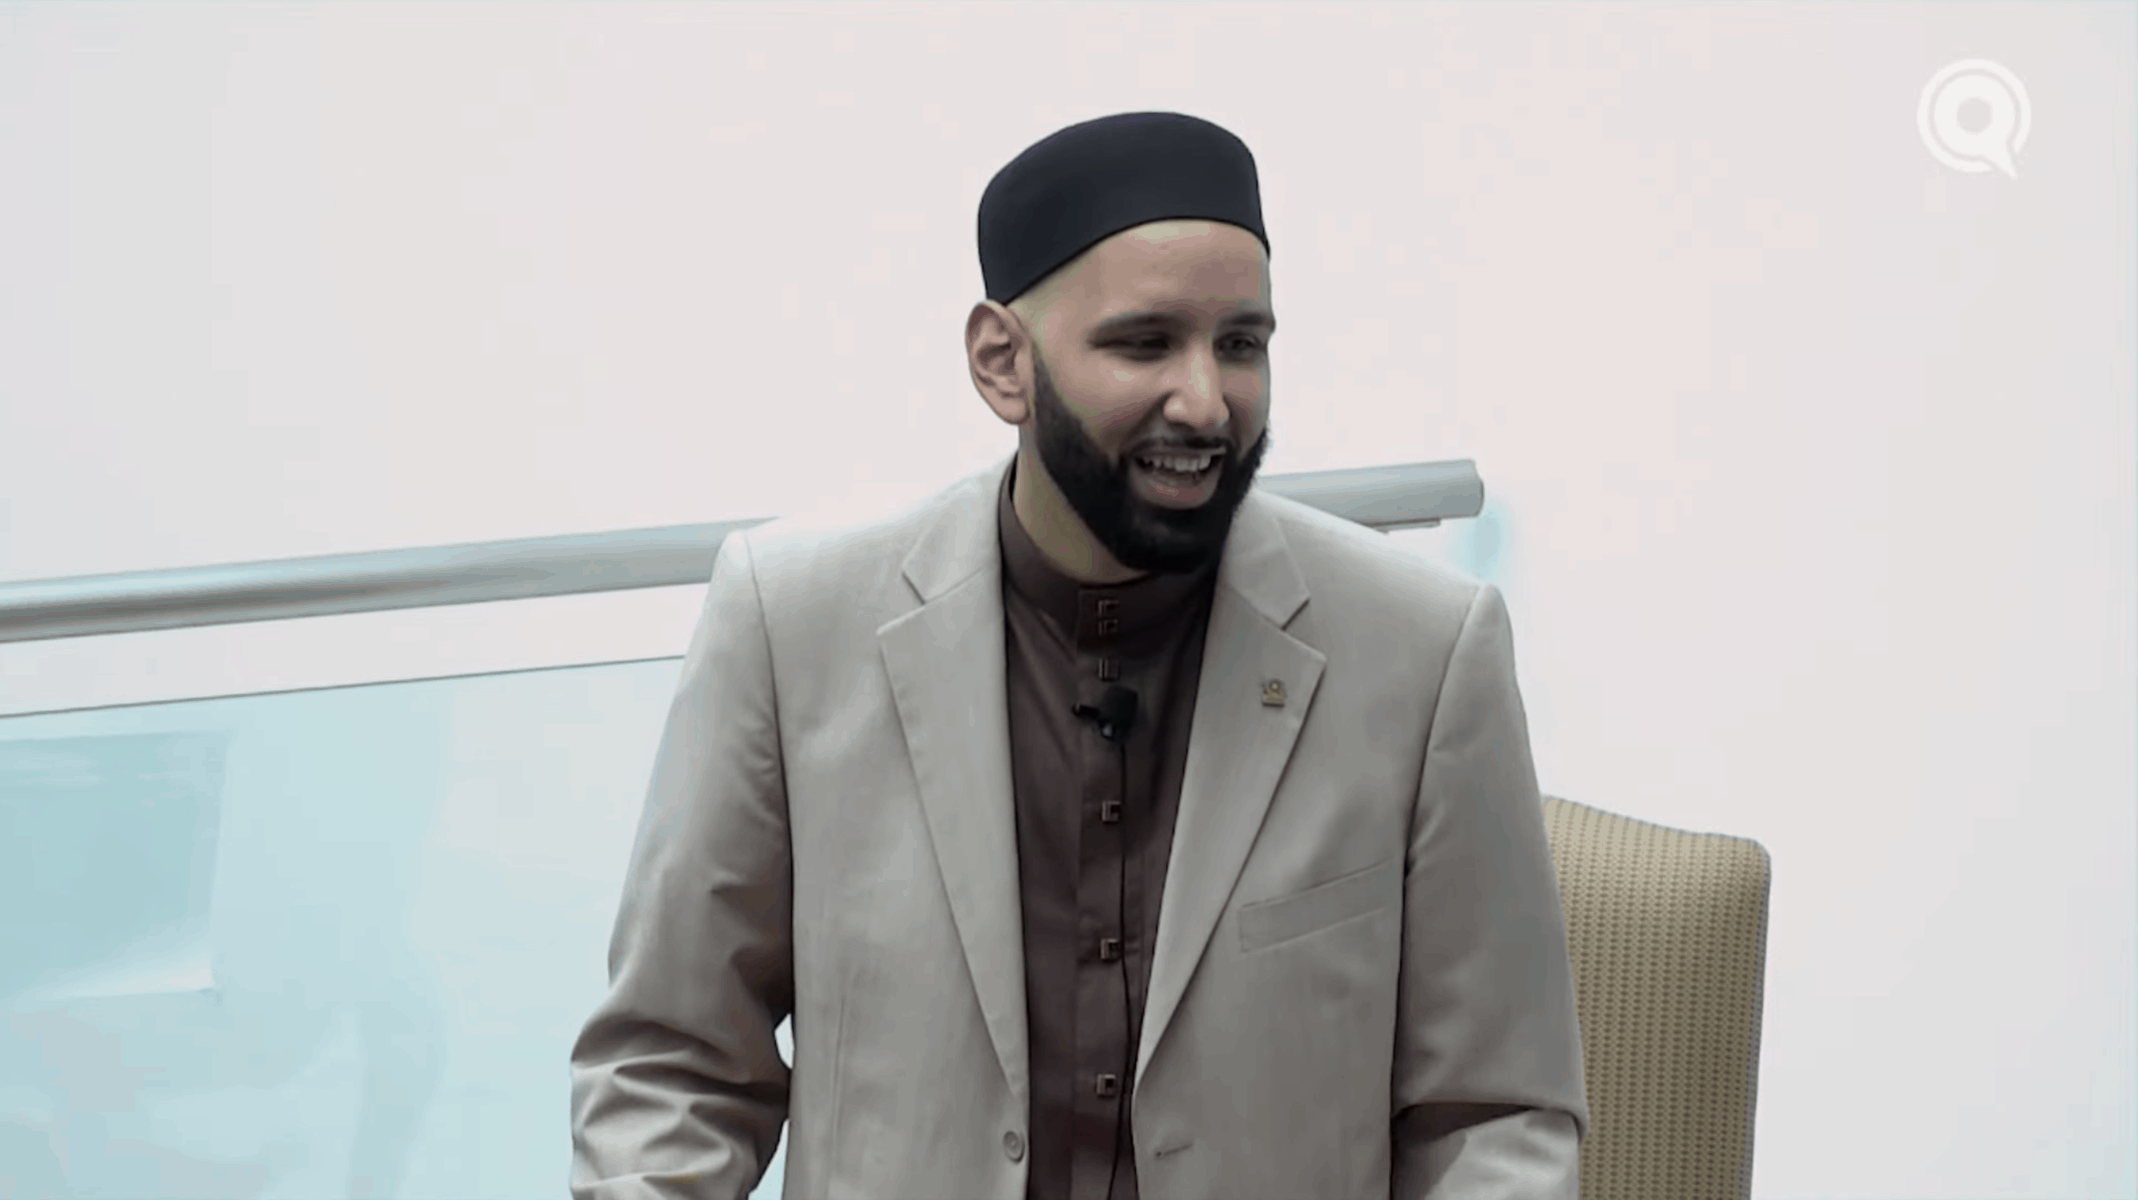 Omar Suleiman – Overcoming Compassion Fatigue, Numbness, and Burnout